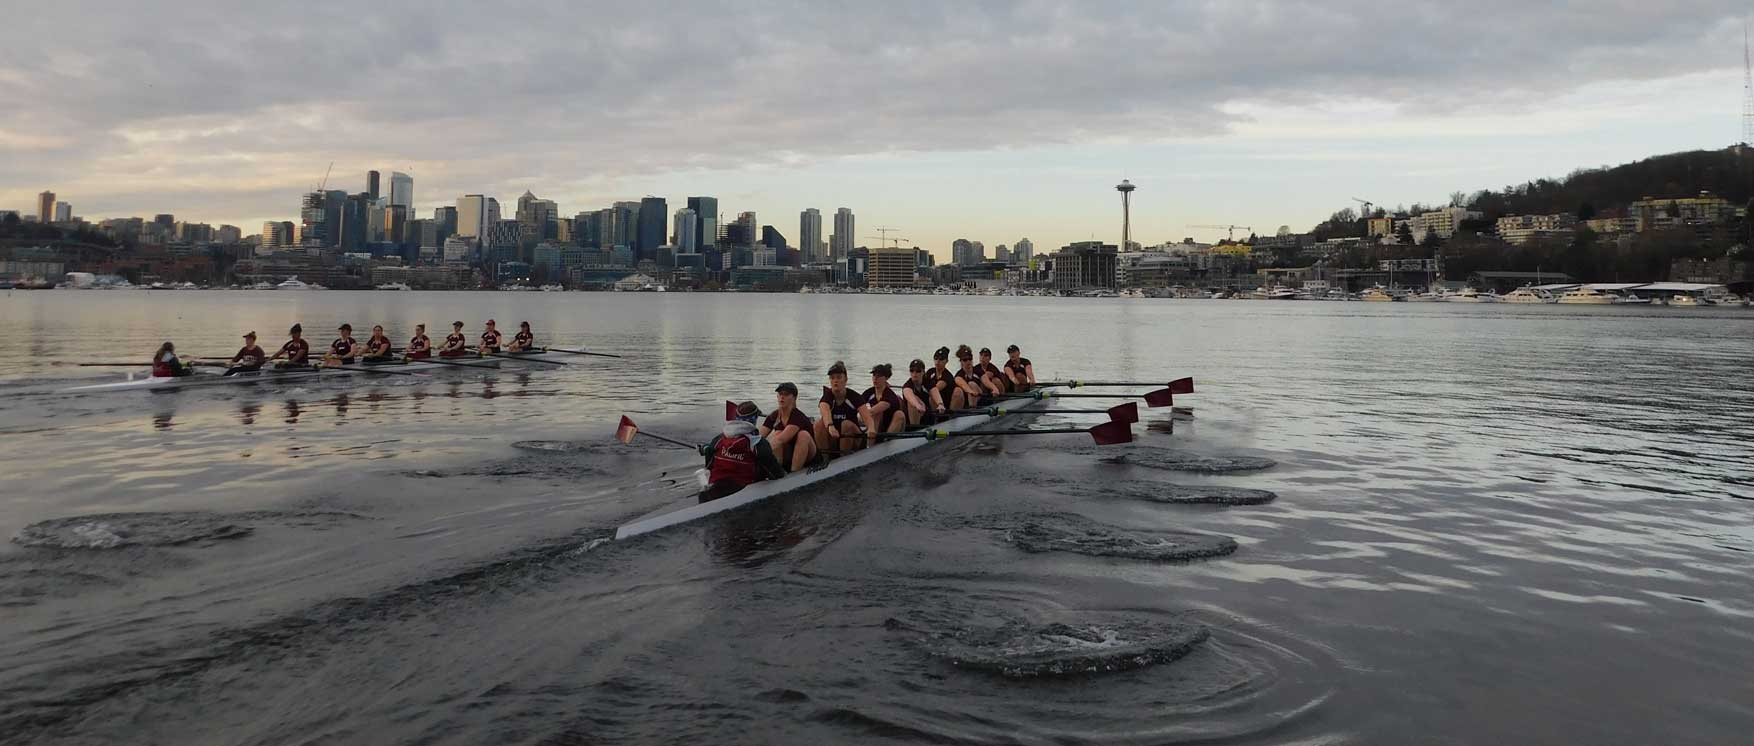 crew team row on lake union